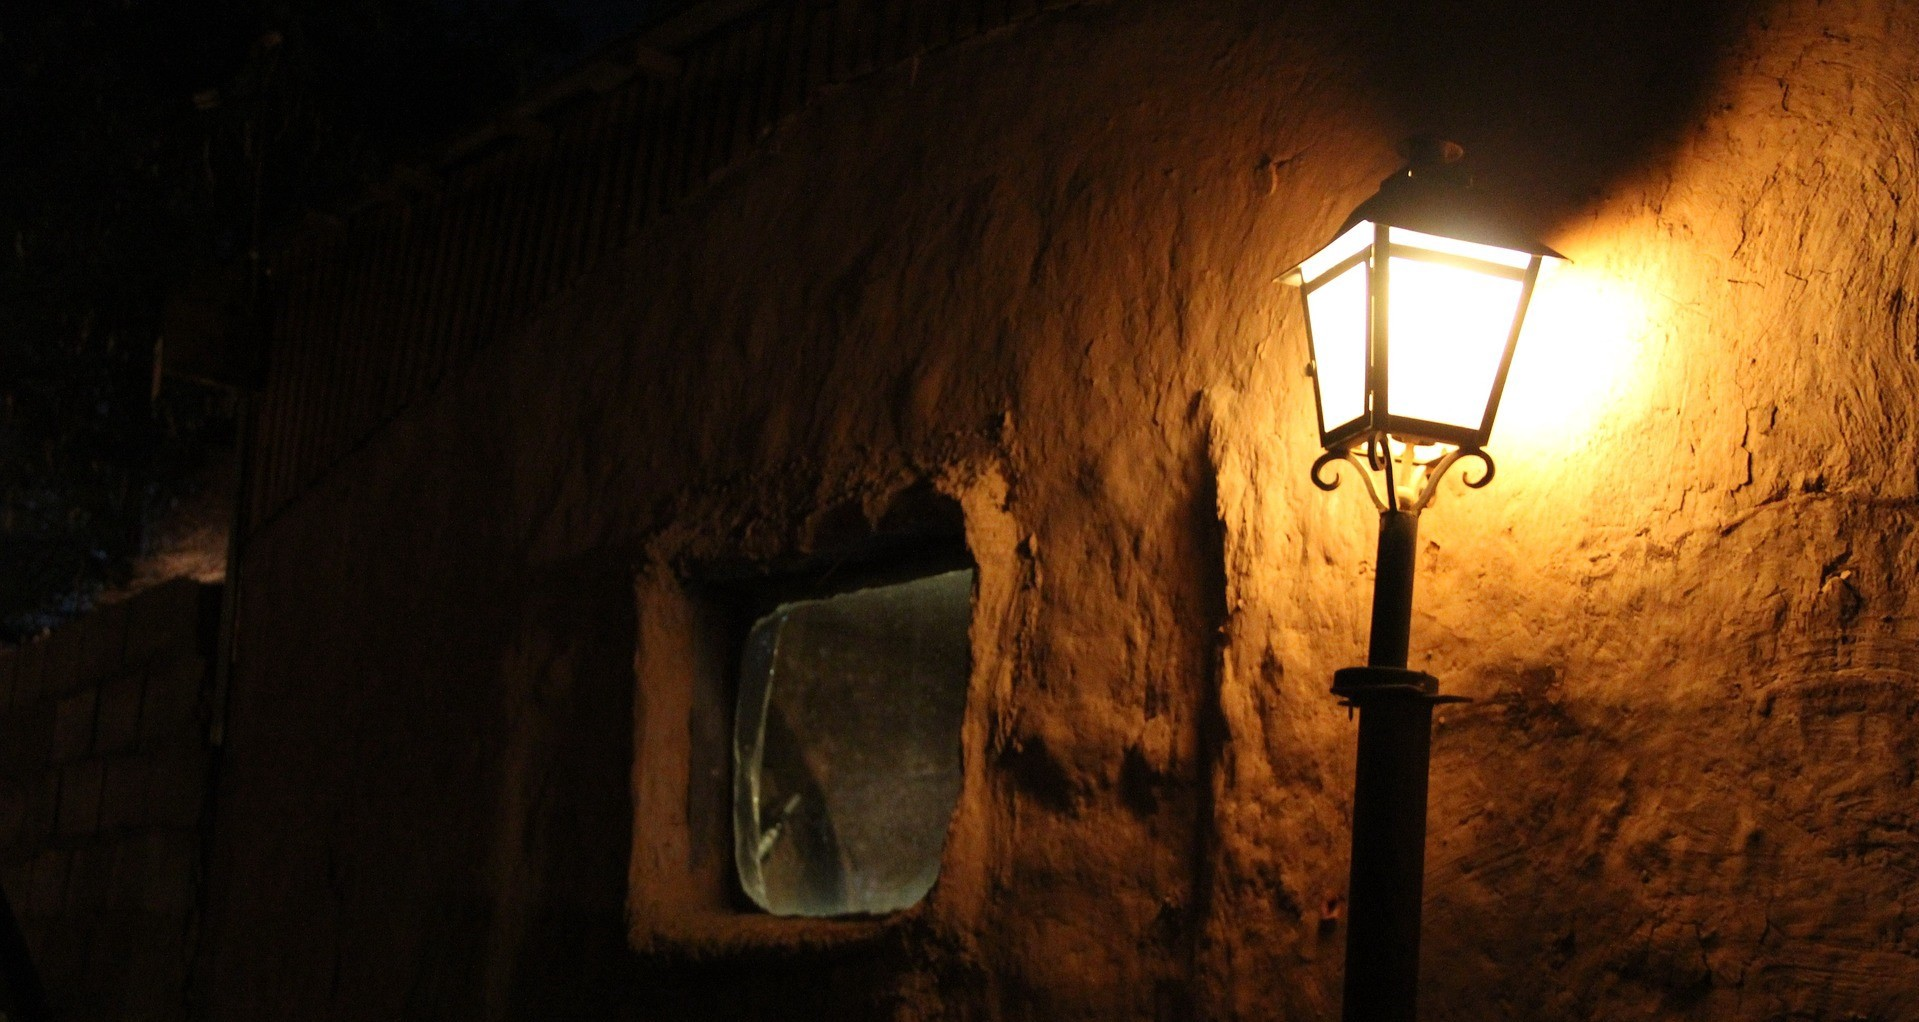 Shining old street lamp near the old wall with the window